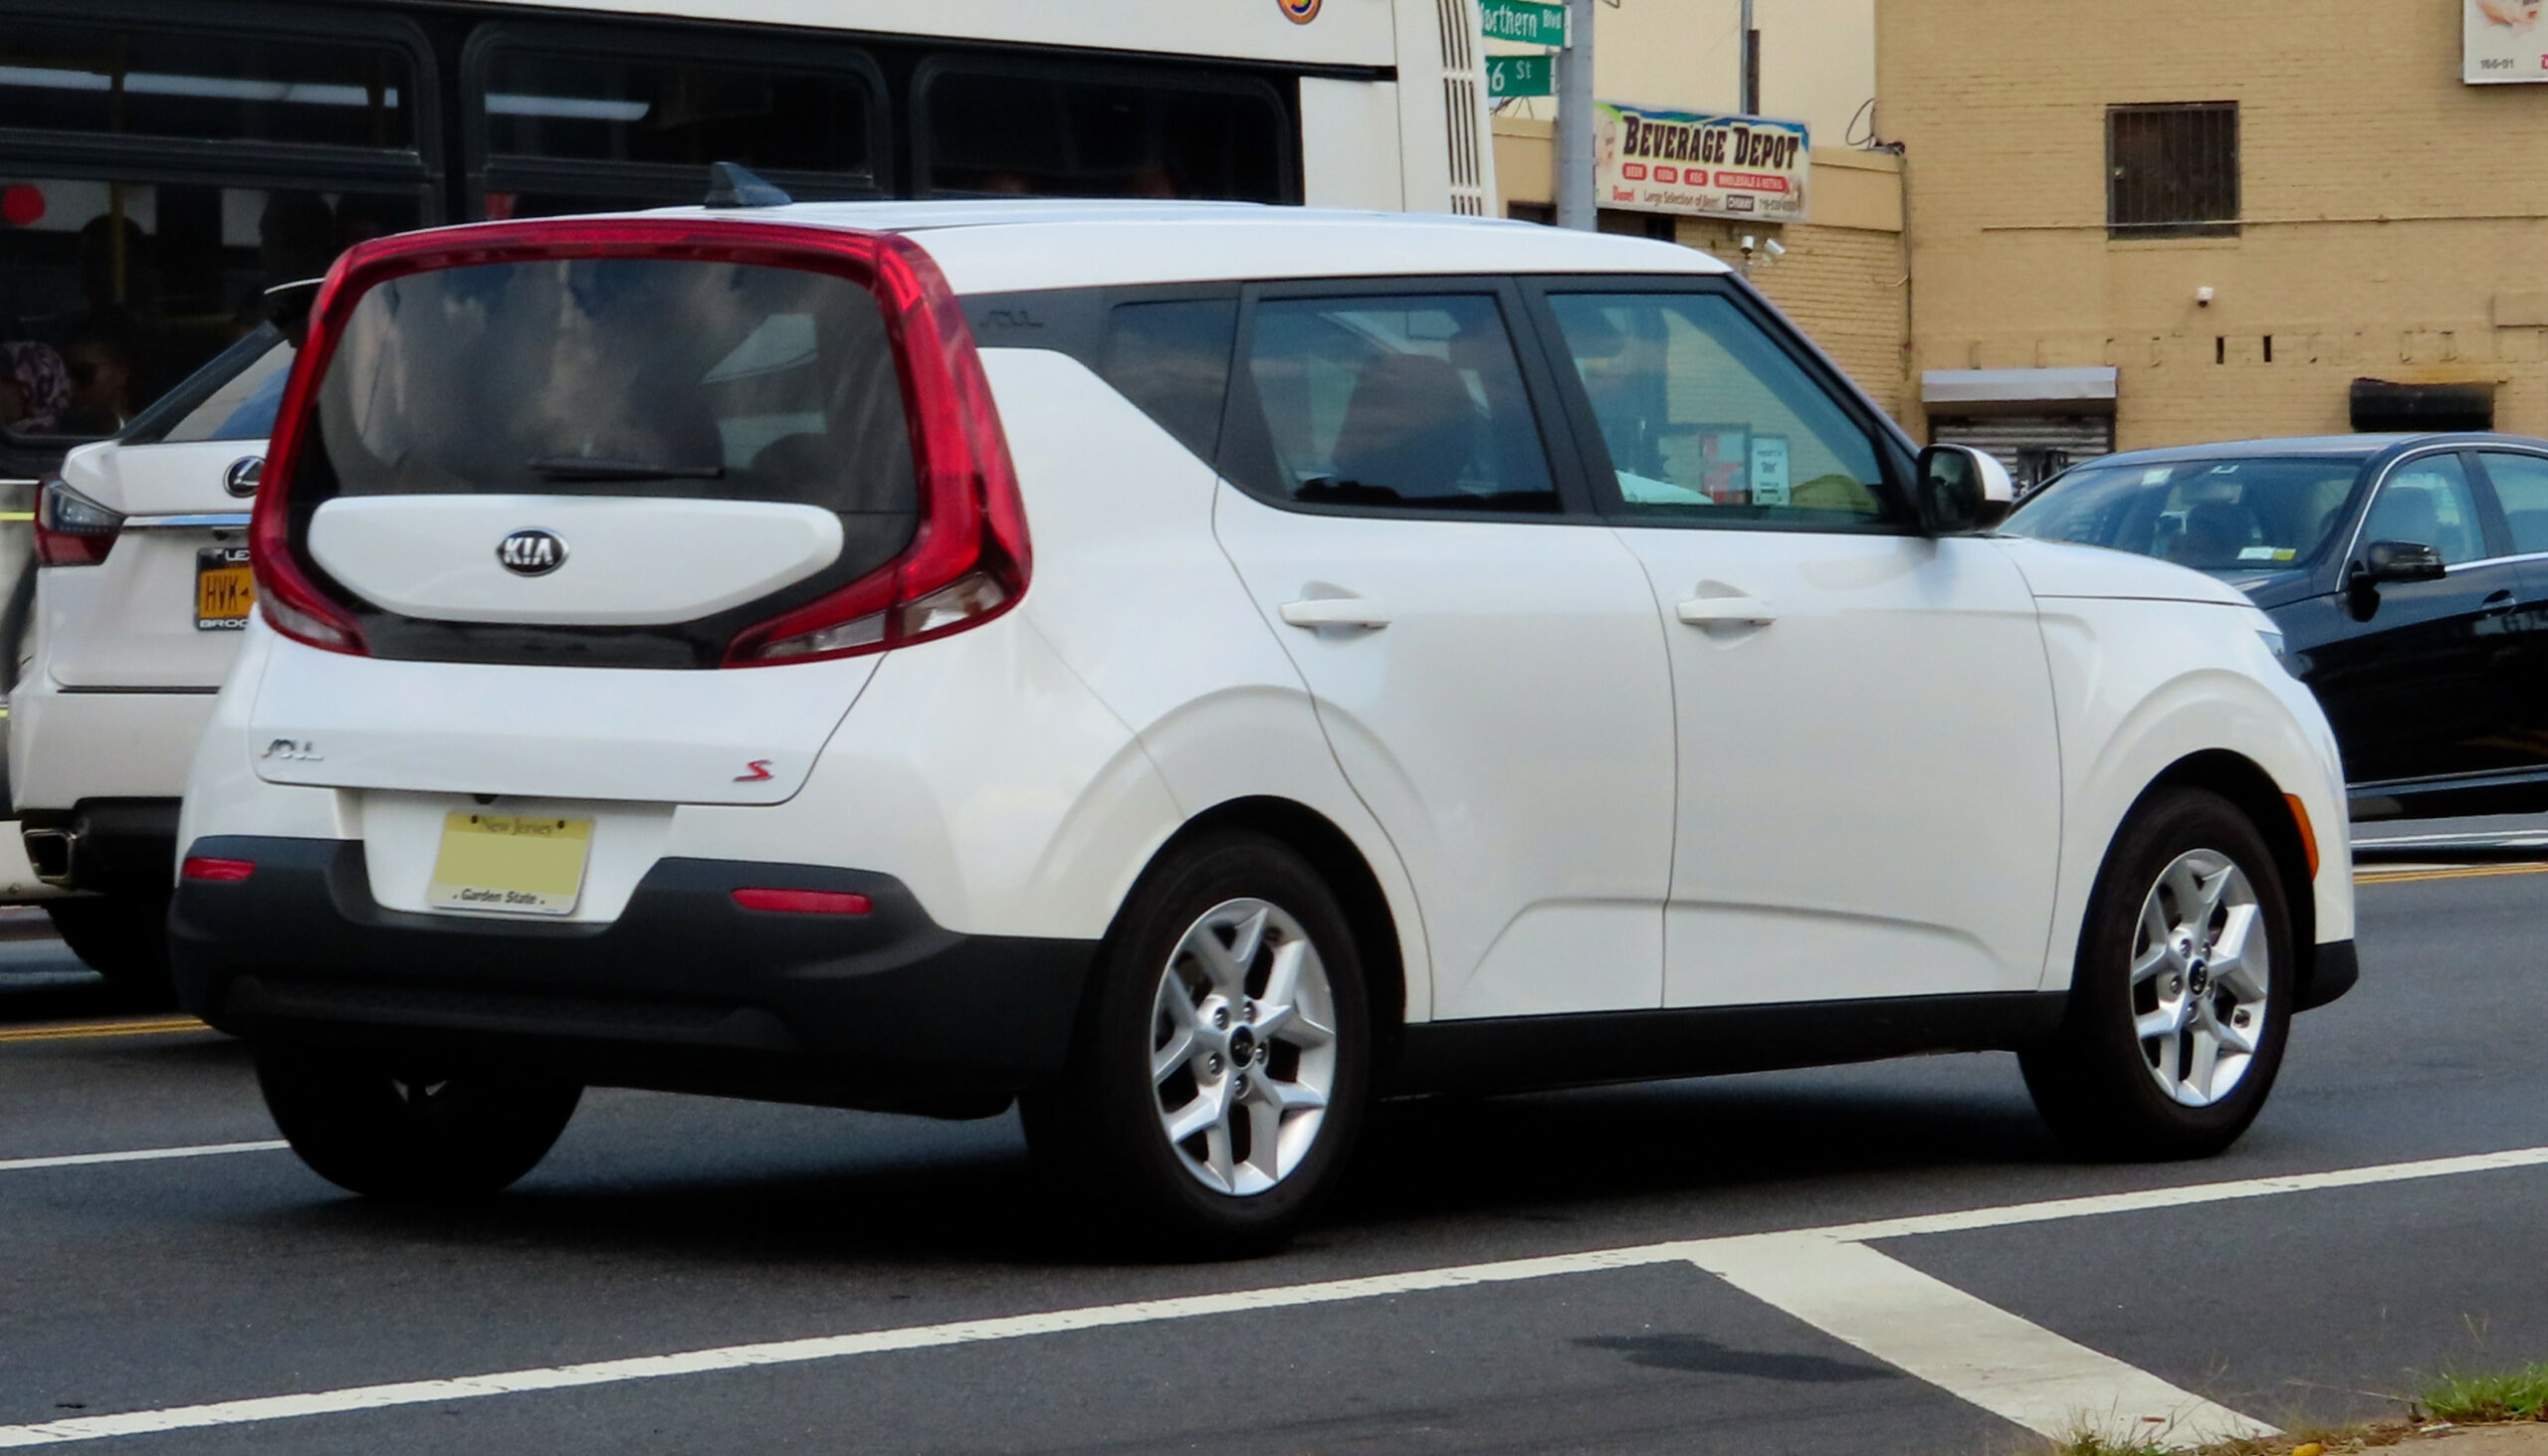 Datei:8 Kia Soul S, rear 8.8.18.jpg – Wikipedia